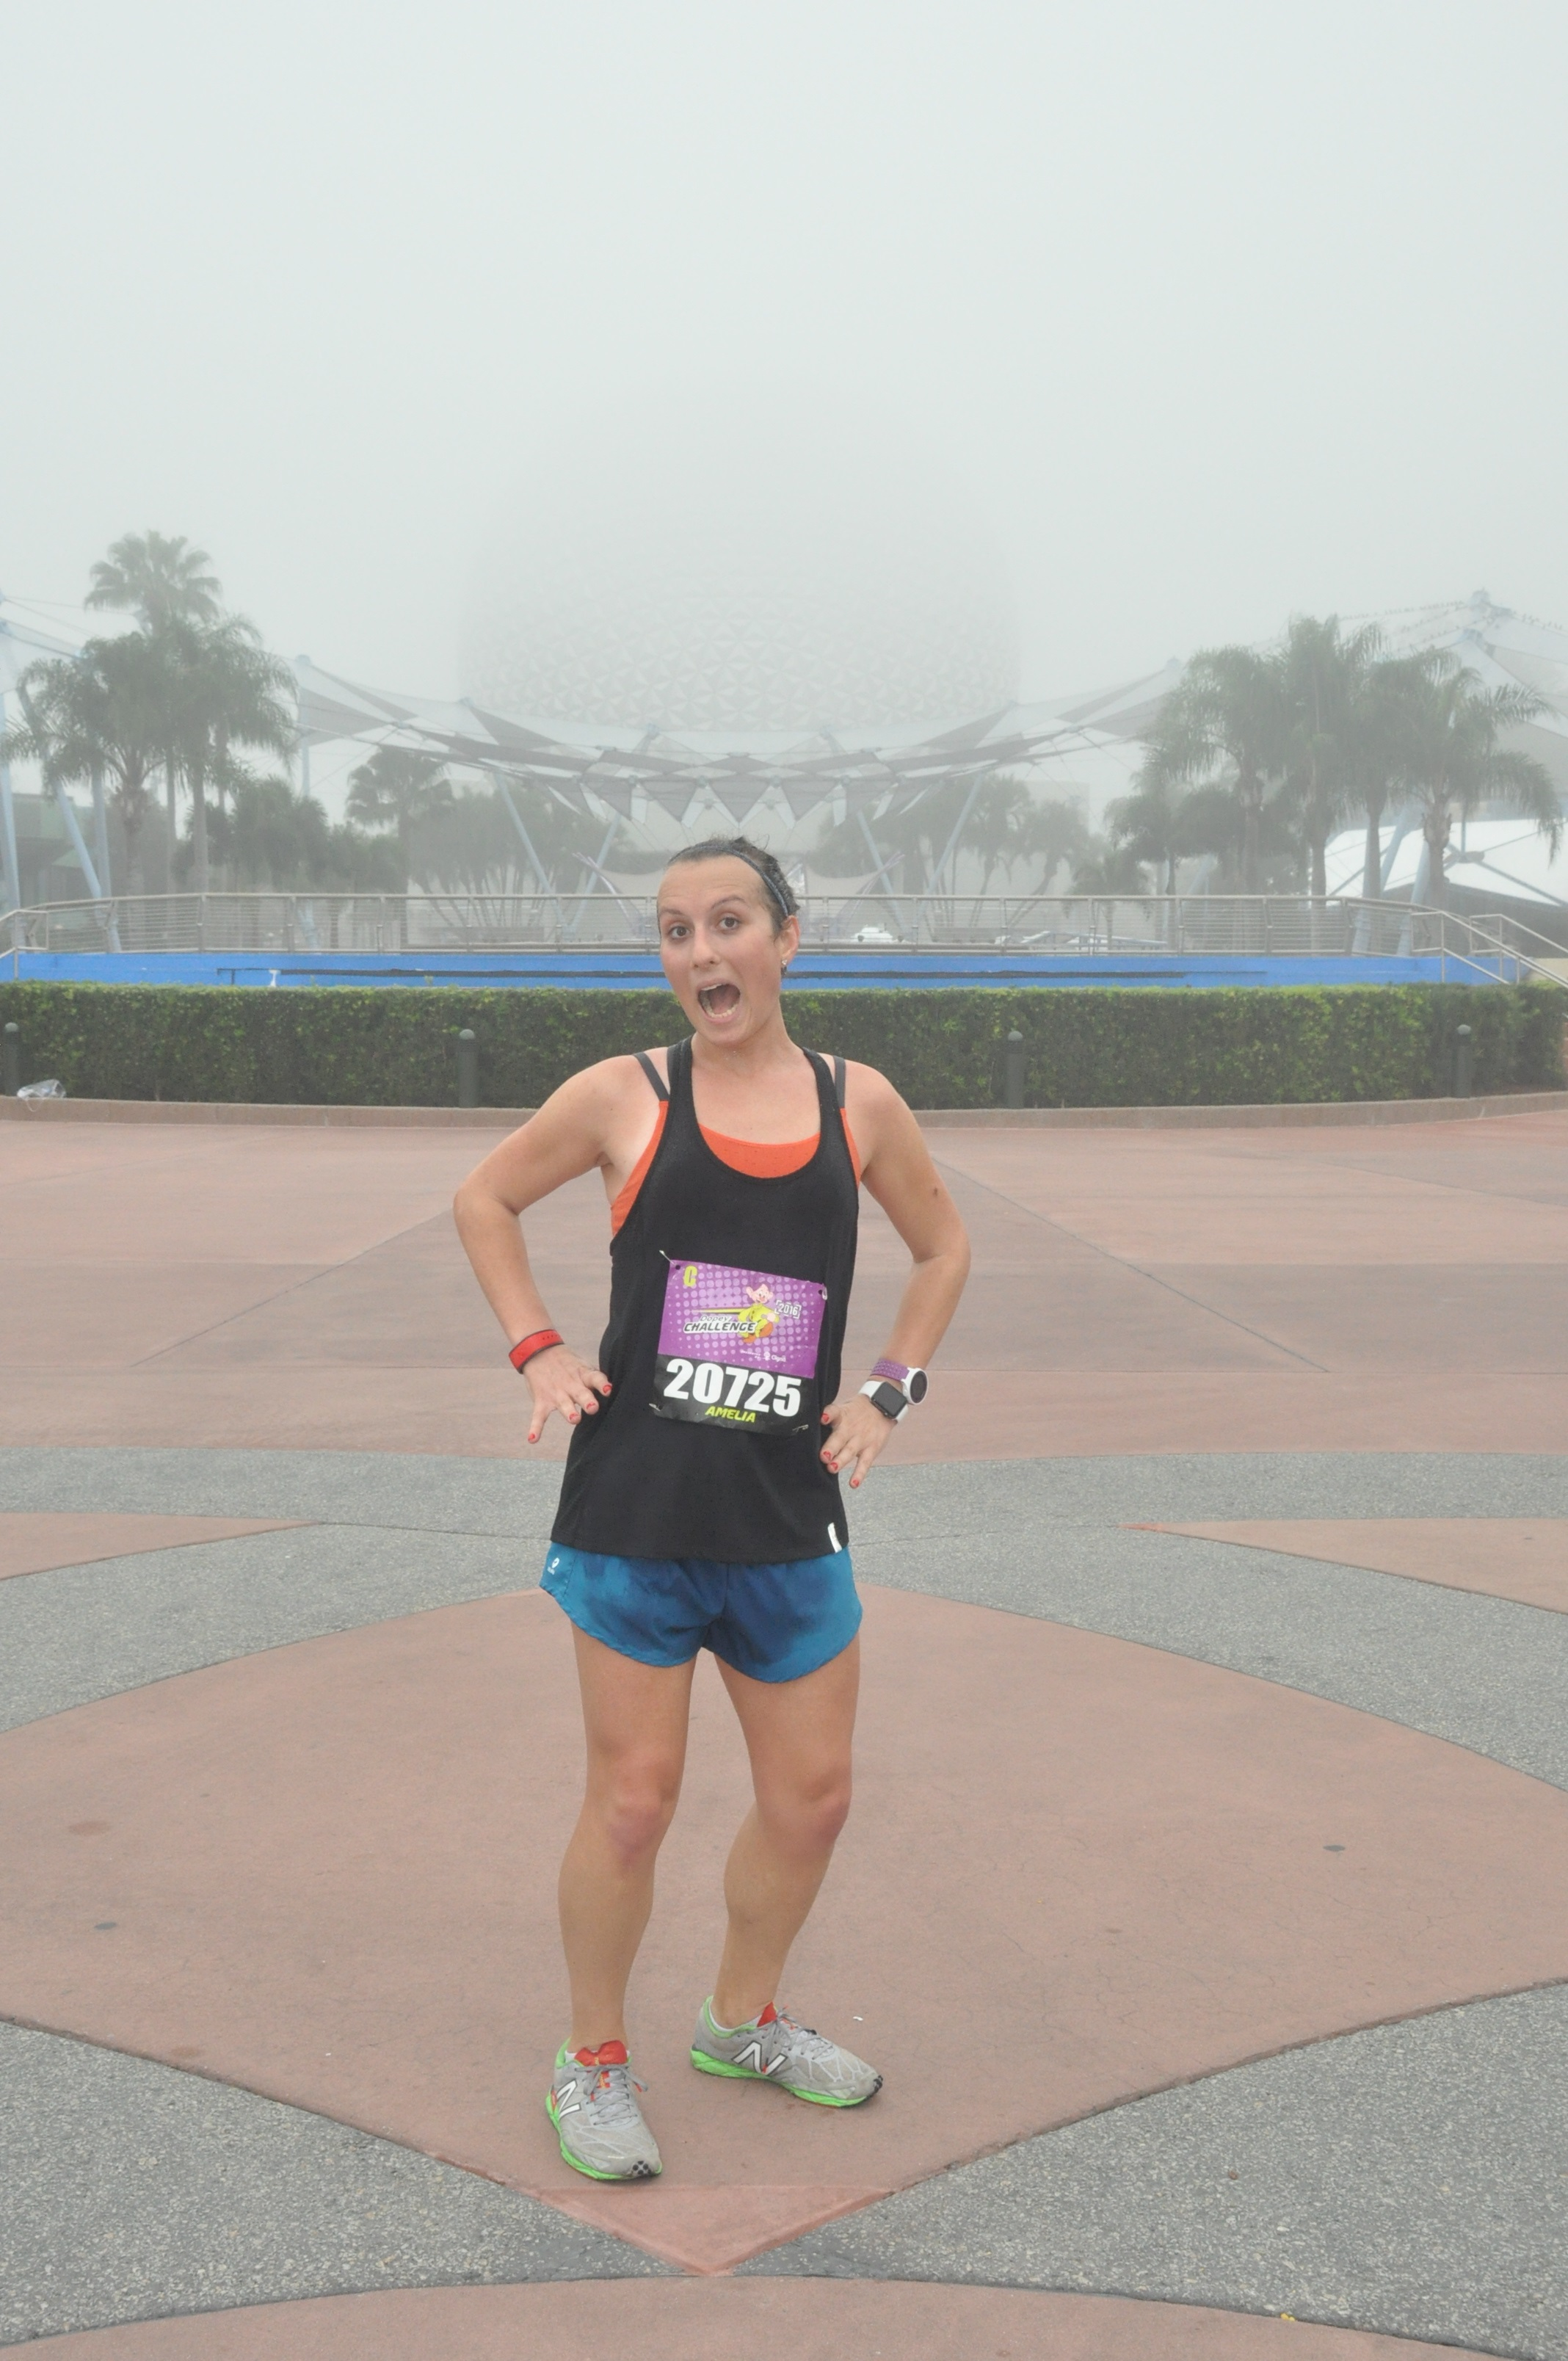 It was SO foggy all race. I promise you Spaceship Earth is behind me here!